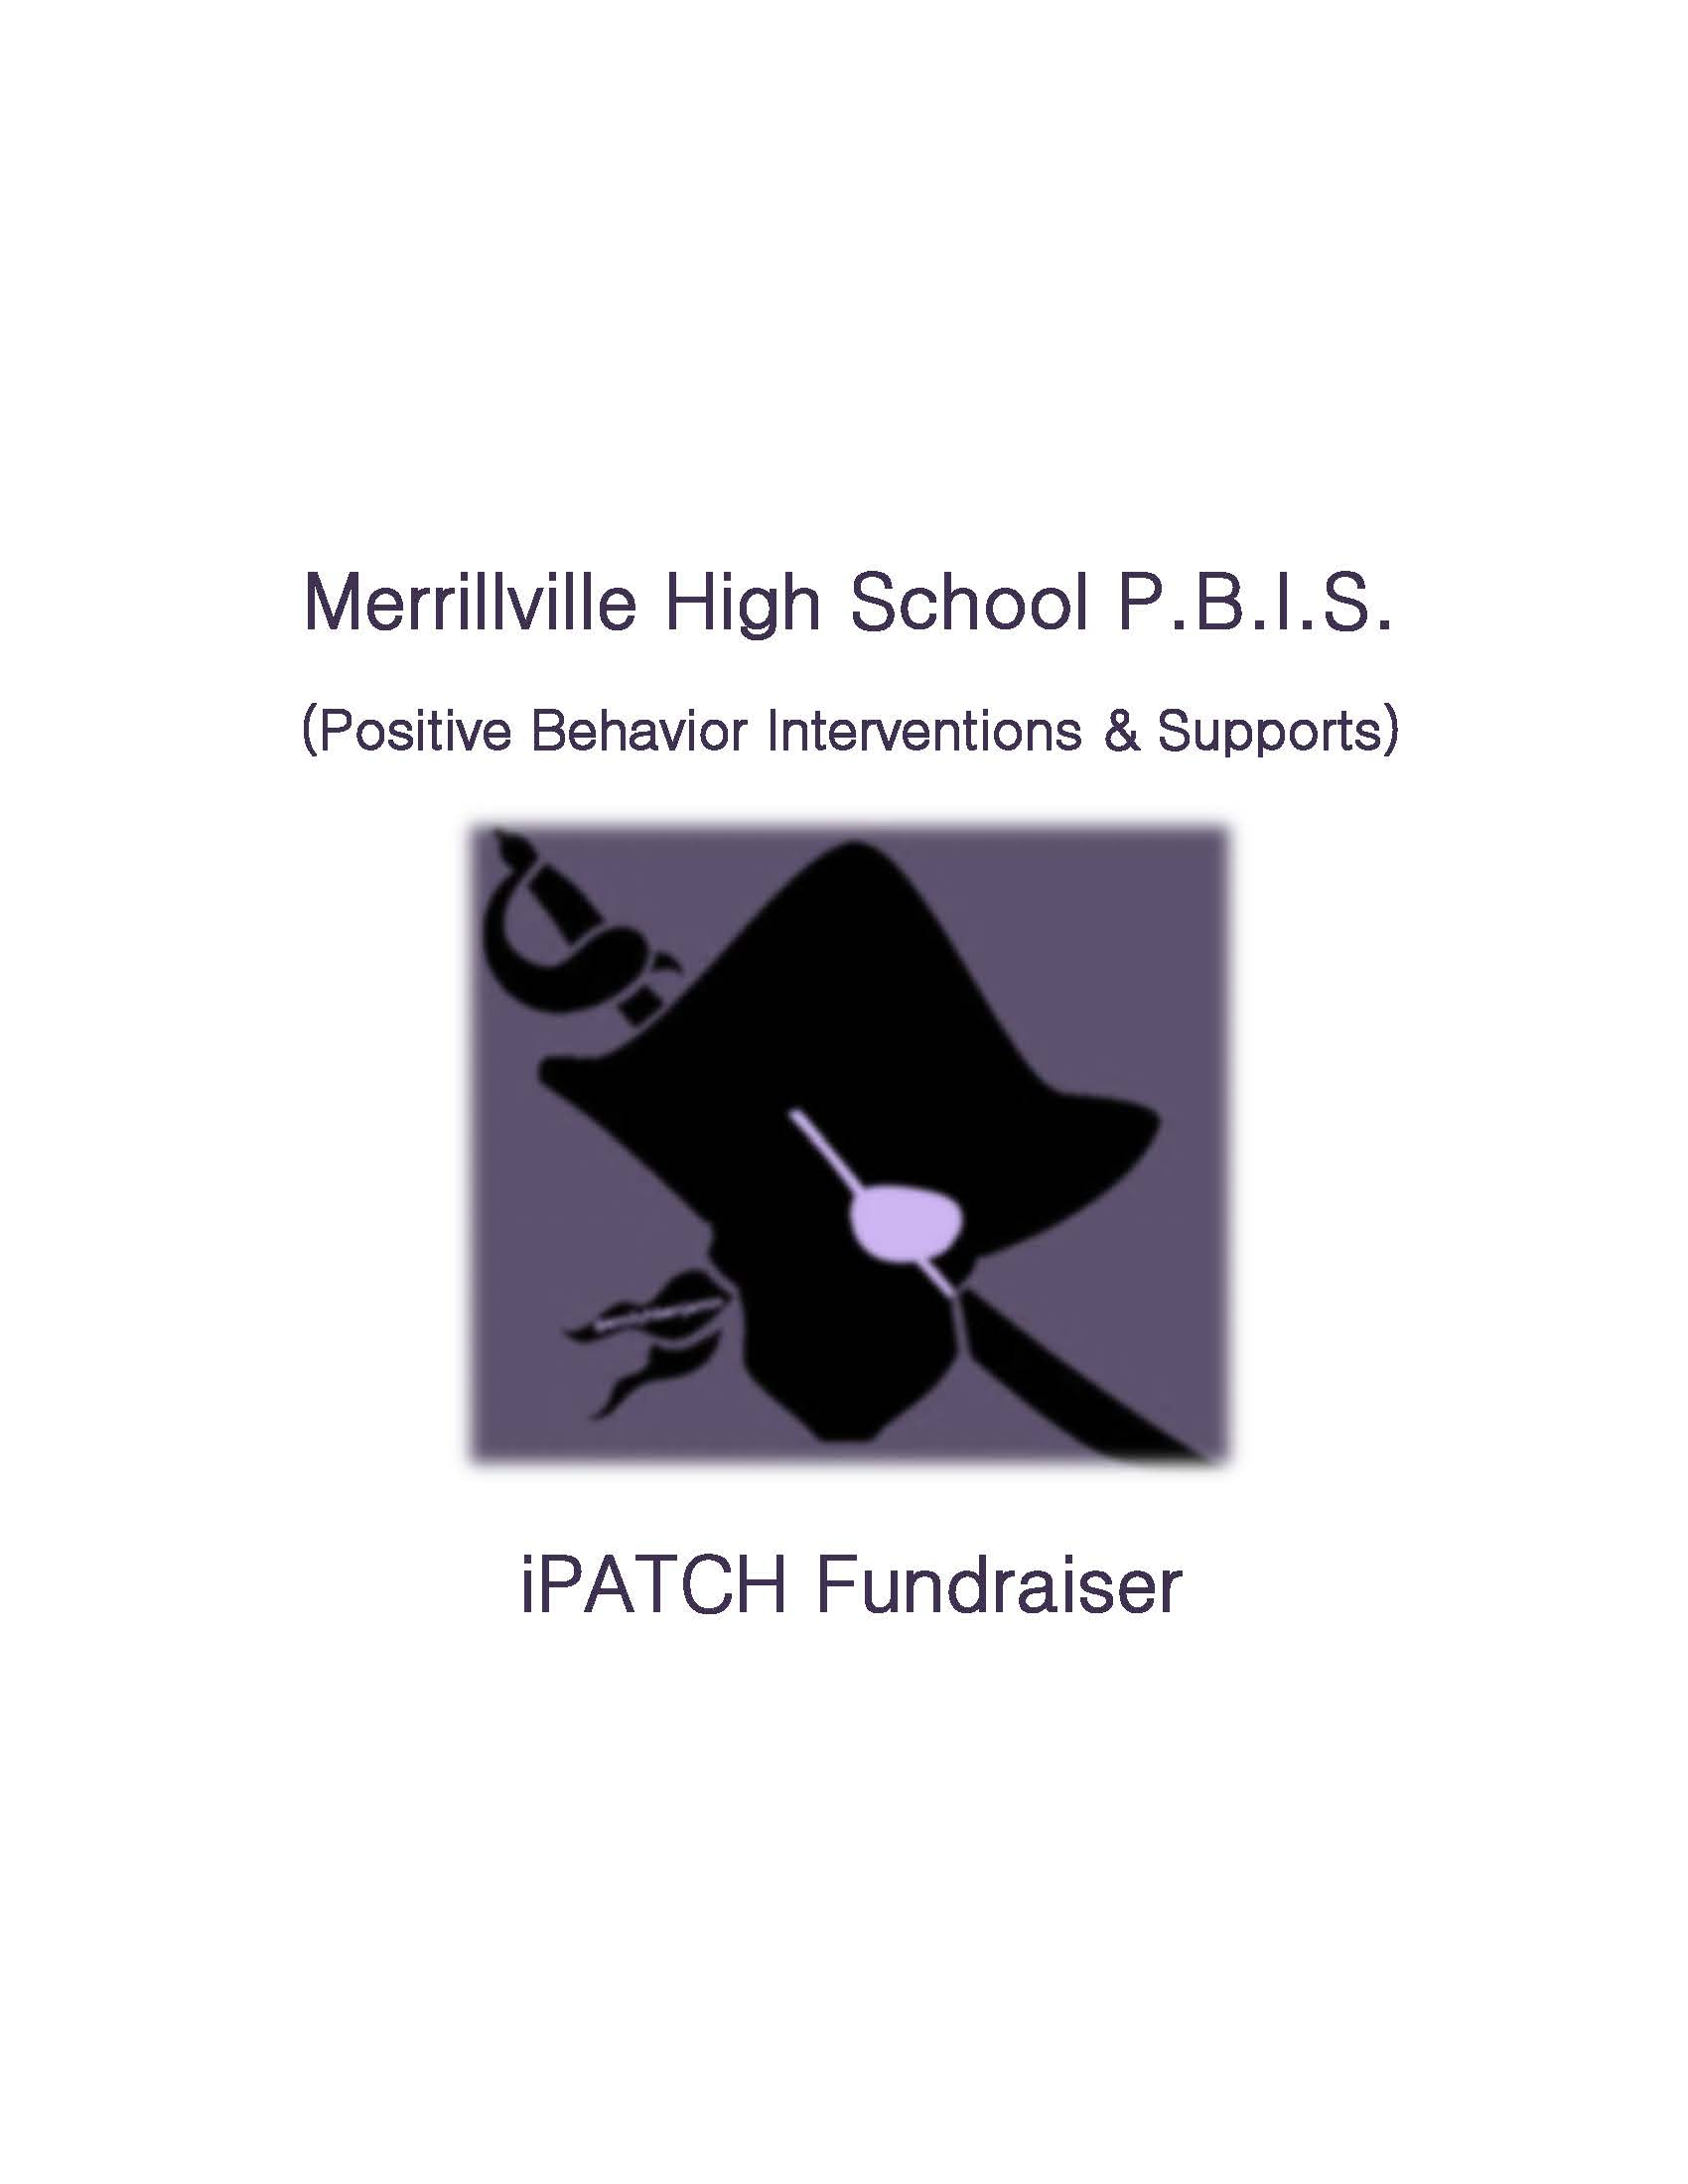 Merrillville High School PBIS Team Announces December Fund Raisers!